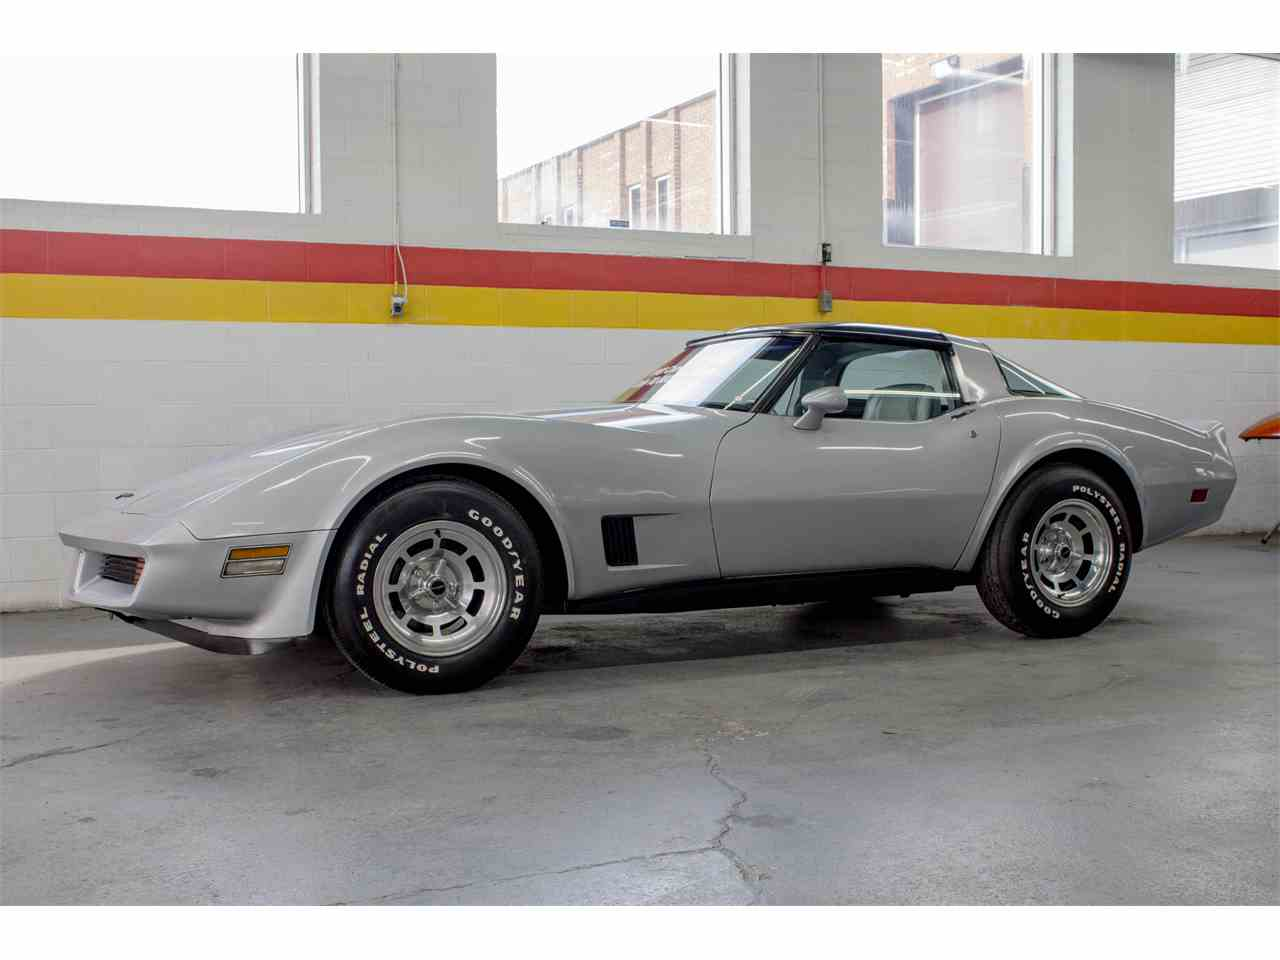 Large Picture of '81 Chevrolet Corvette located in Montreal Quebec - $26,900.00 Offered by John Scotti Classic Cars - KKXV